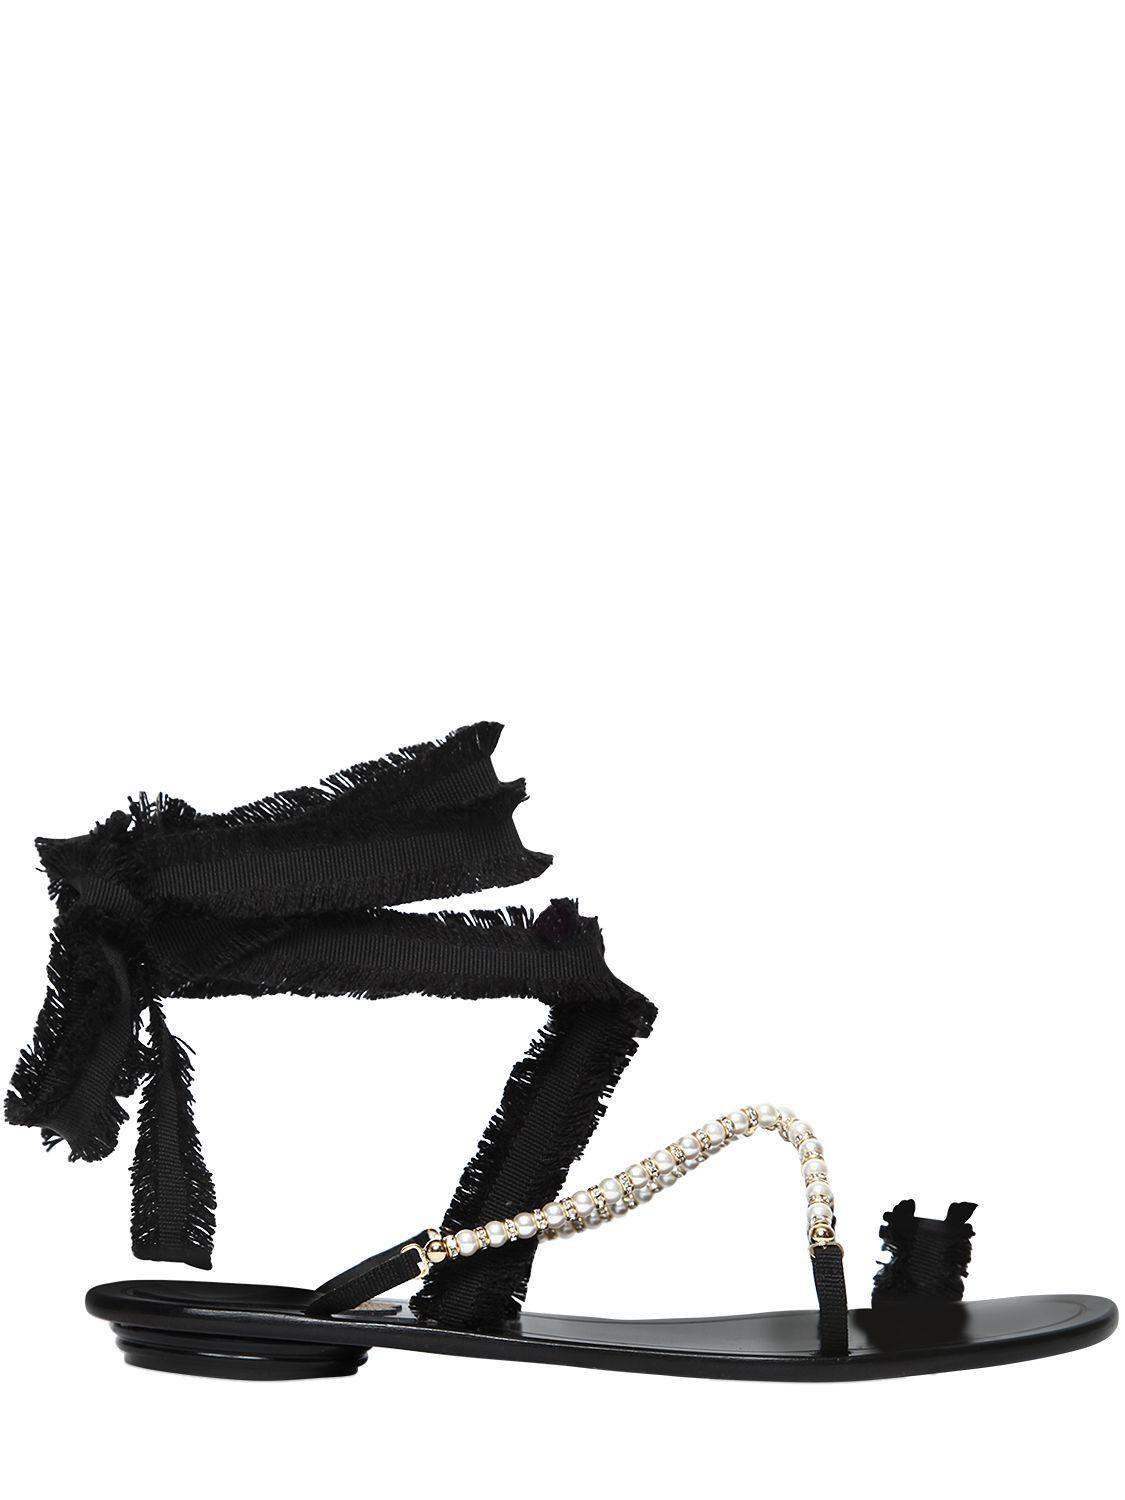 908586547 Lyst - Rene Caovilla 10mm Swarovski   Grosgrain Sandals in Black